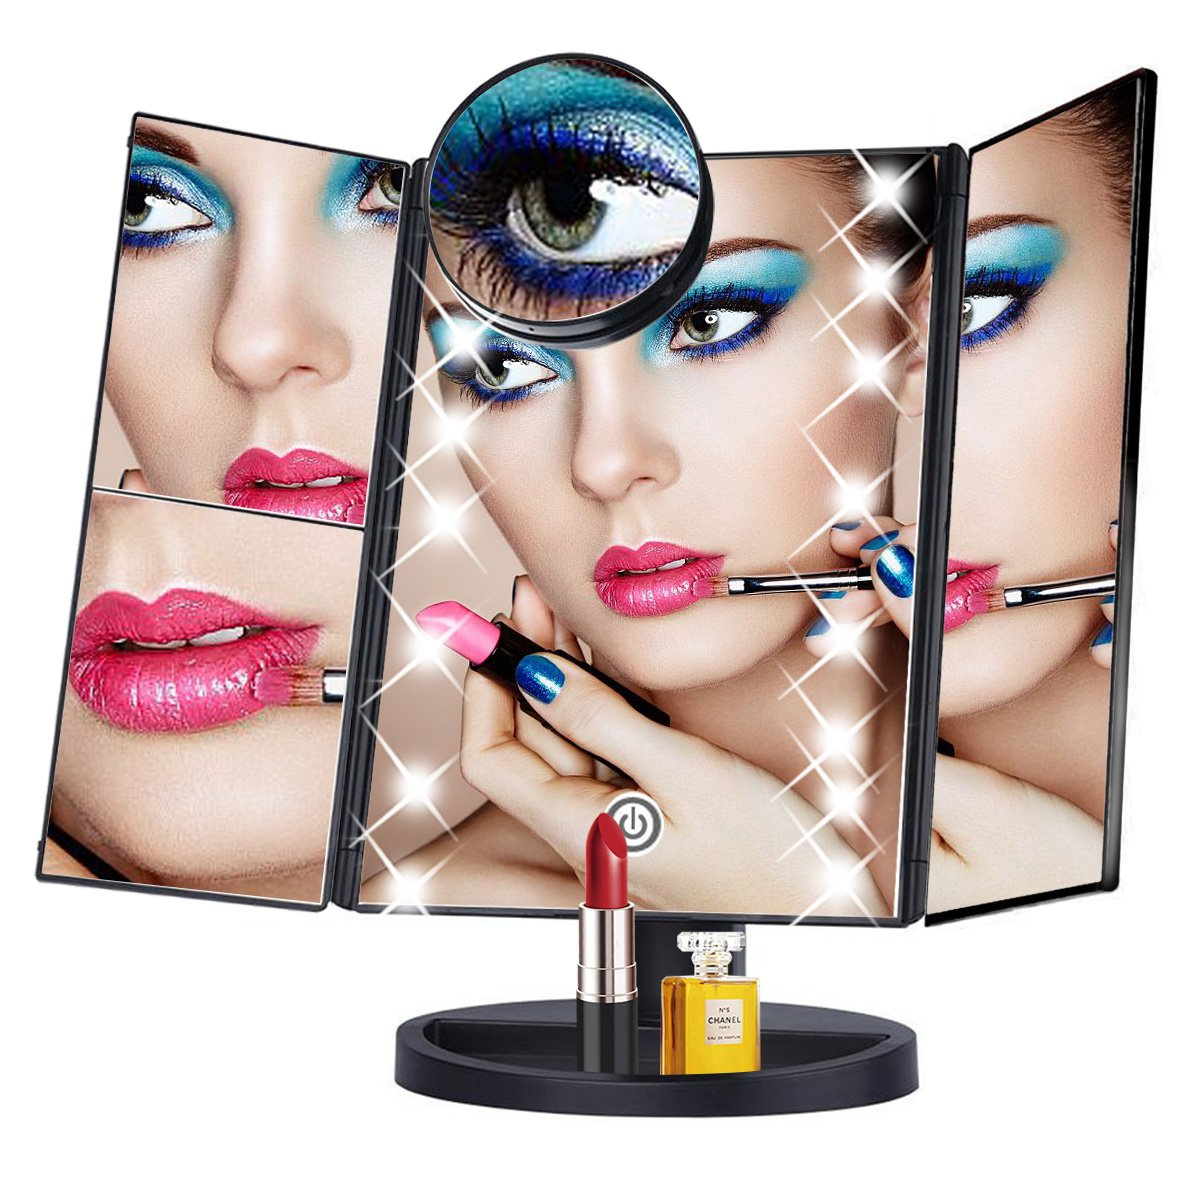 Abandship Makeup Vanity Mirror with 22 Led Lights,Tri Fold Mirror with 10x/3x/2x Magnification and Touch Screen,180°Adjustable Rotating,Battery&USB,Countertop Makeup Mirror for Women